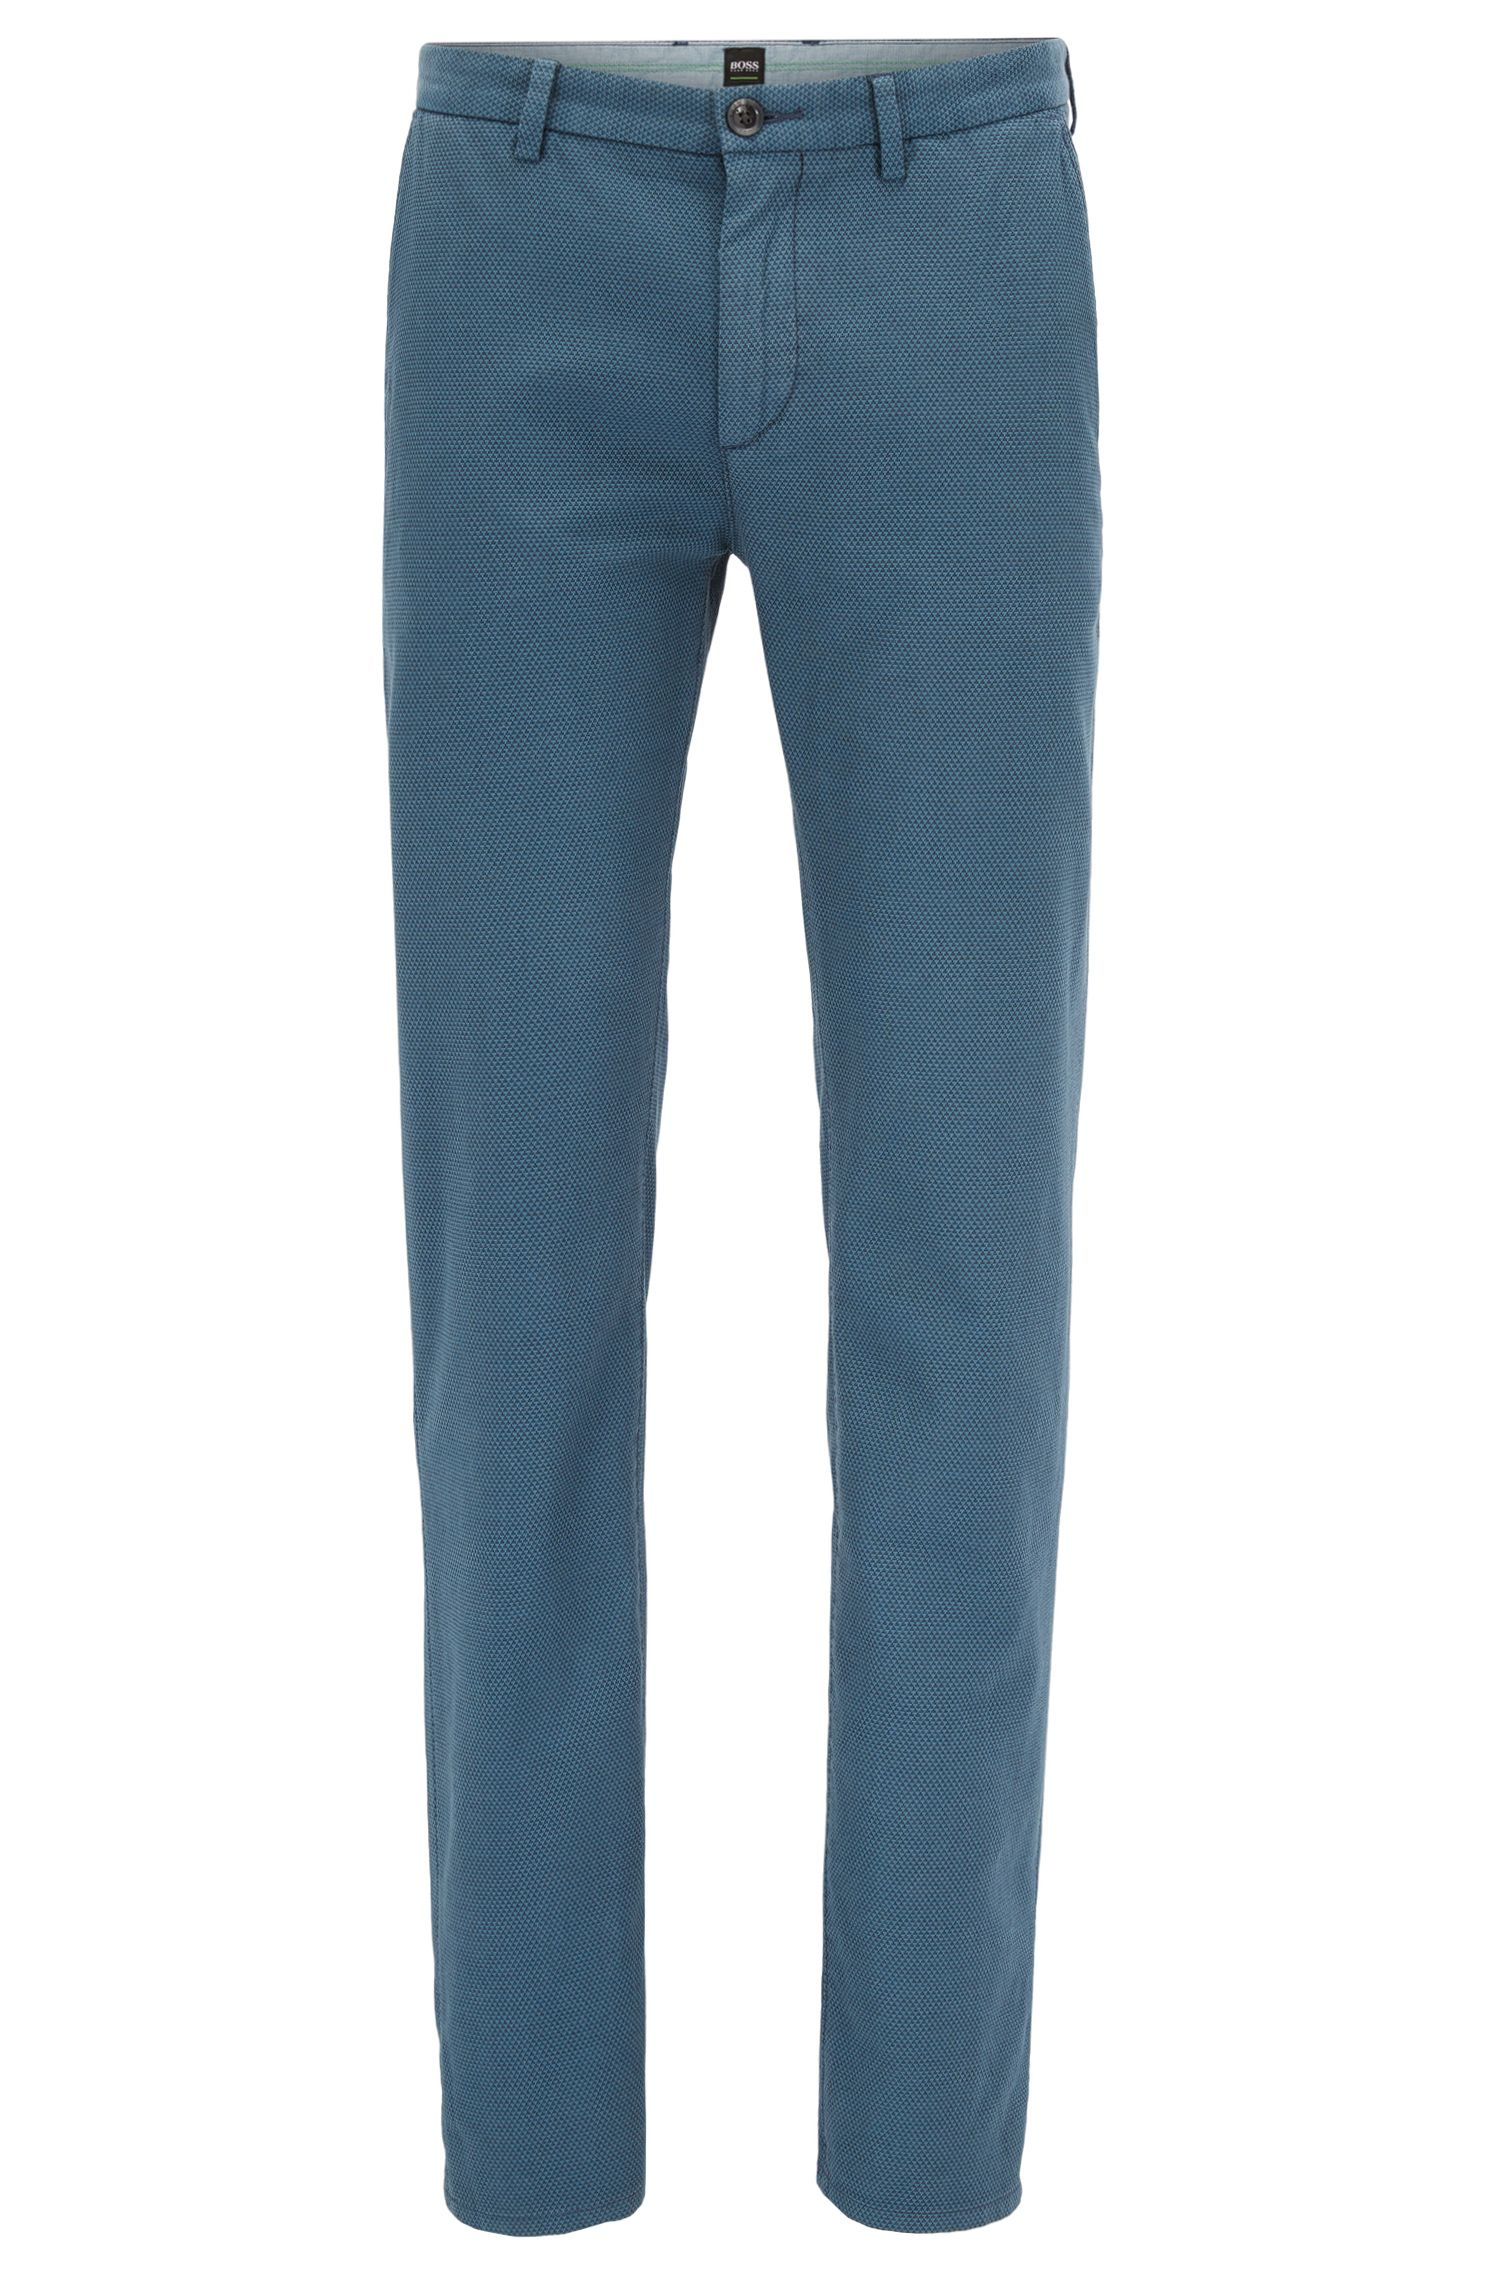 Stretch Cotton Chino Pant, Slim Fit | Rogan D